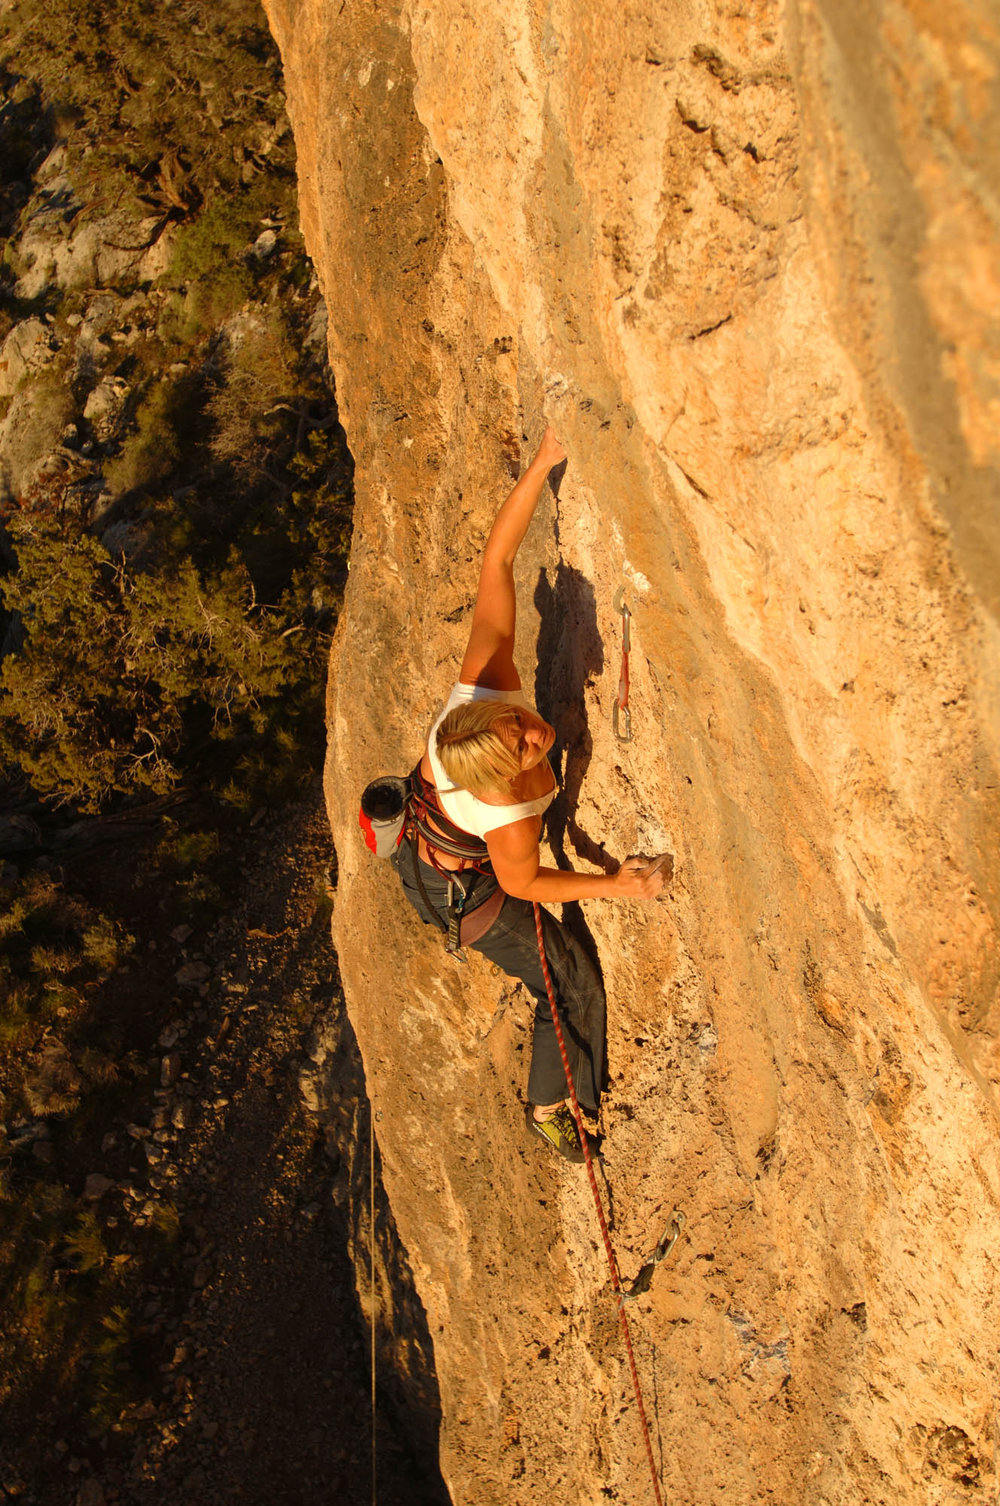 Misty on the classic route 'Hobytla' 13a @ Welcome Spring, Utah photo- Keith Ladzinski